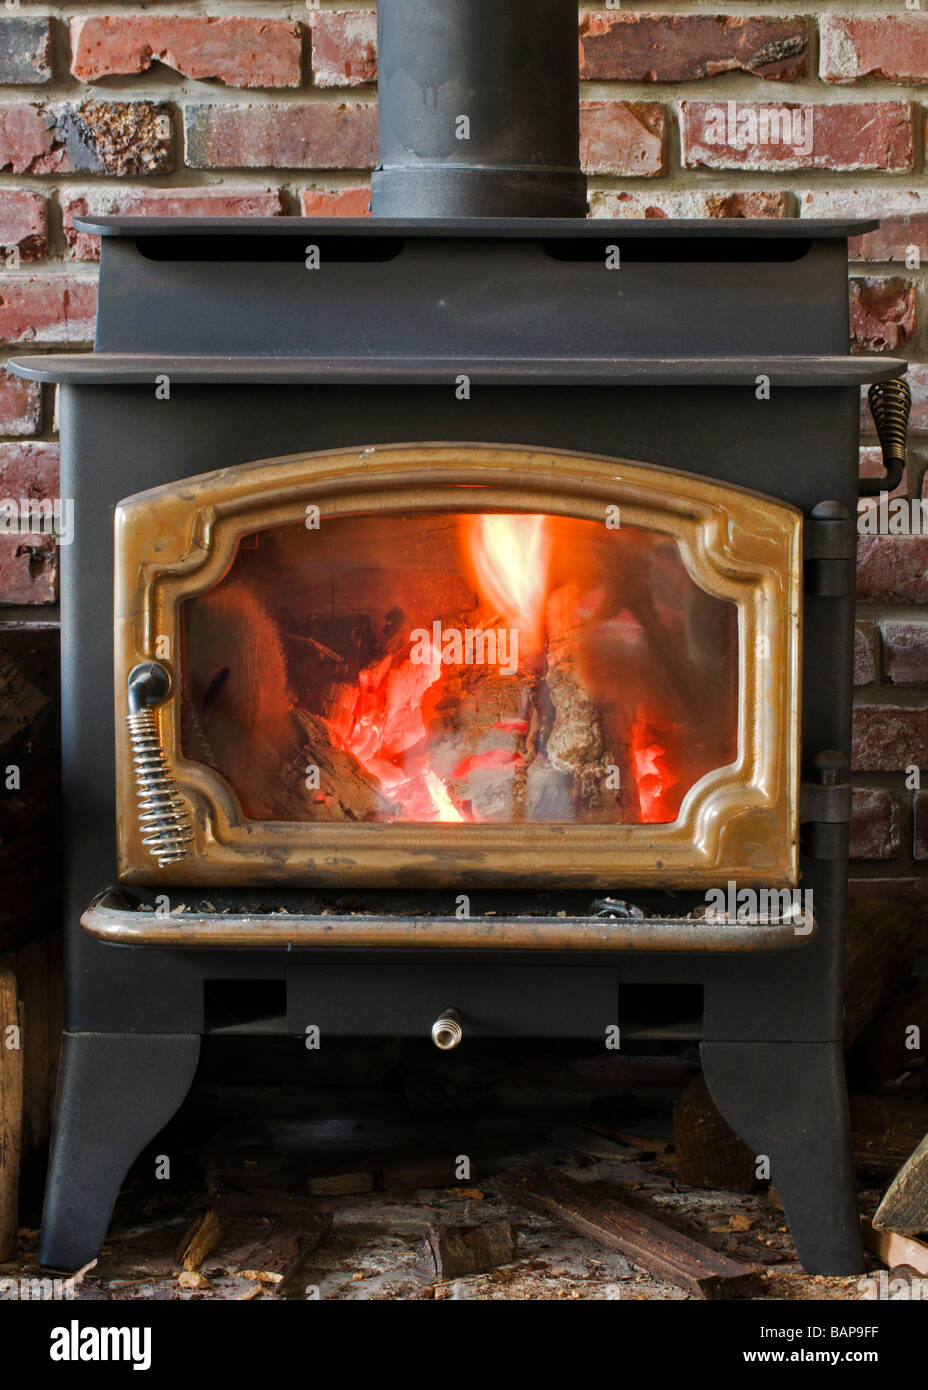 Cozy fire in wood burning stove glows brightly. - Stock Image